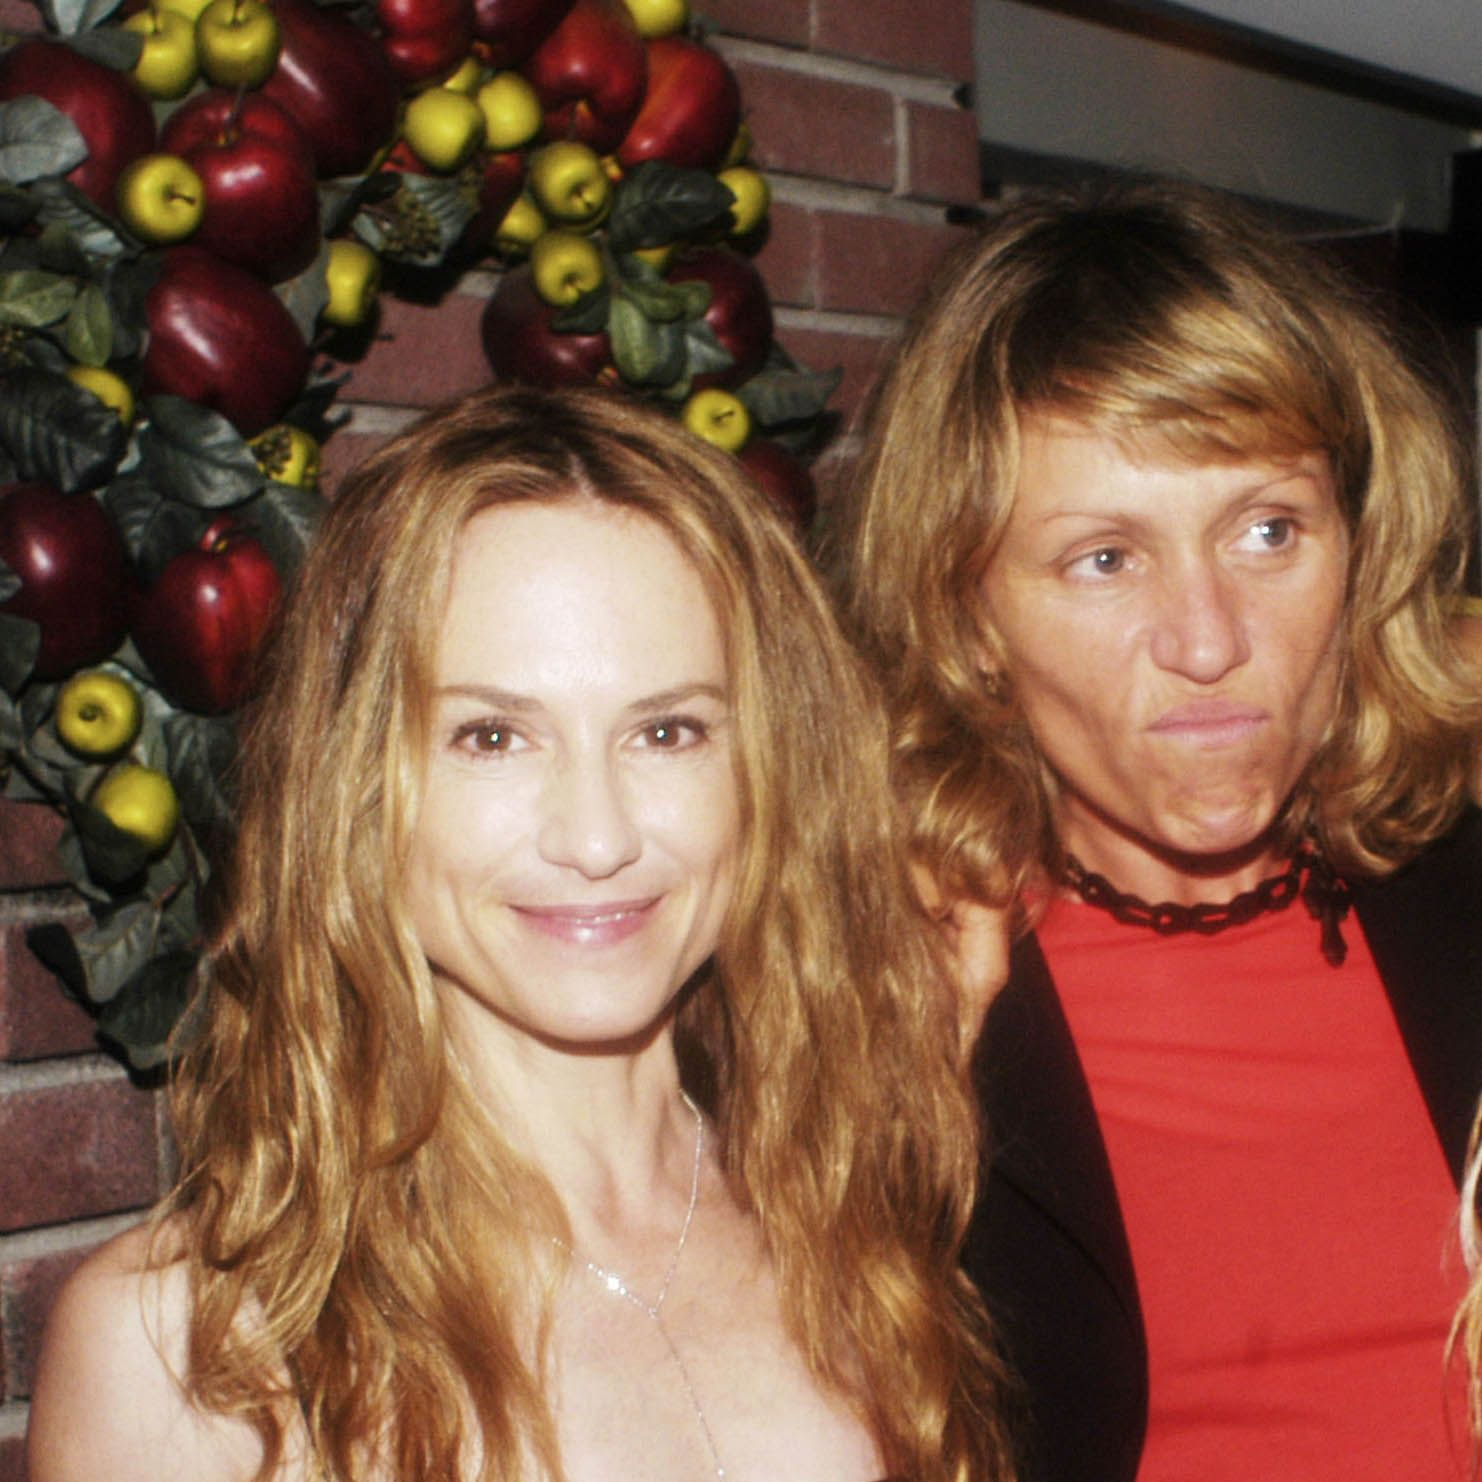 """NEW YORK - SEPTEMBER 4:  (HOLLYWOOD REPORTER OUT)  Actress Holly Hunter, Frances McDormand and director Catherine Hardwicke at a party thrown by  actress Frances McDormand,  celebrating the success of the Fox Searchlight Picture, """"Thirteen"""" On September 4, 2003 at  Vince &amp&#x3B; Eddie's Restaurant in New York City. """"Thirteen"""" was co-written by Catherine Hardwicke and 13-year old , Nikki Reed  who also stars in the film. (Photo by Myrna Suarez/Getty Images)"""